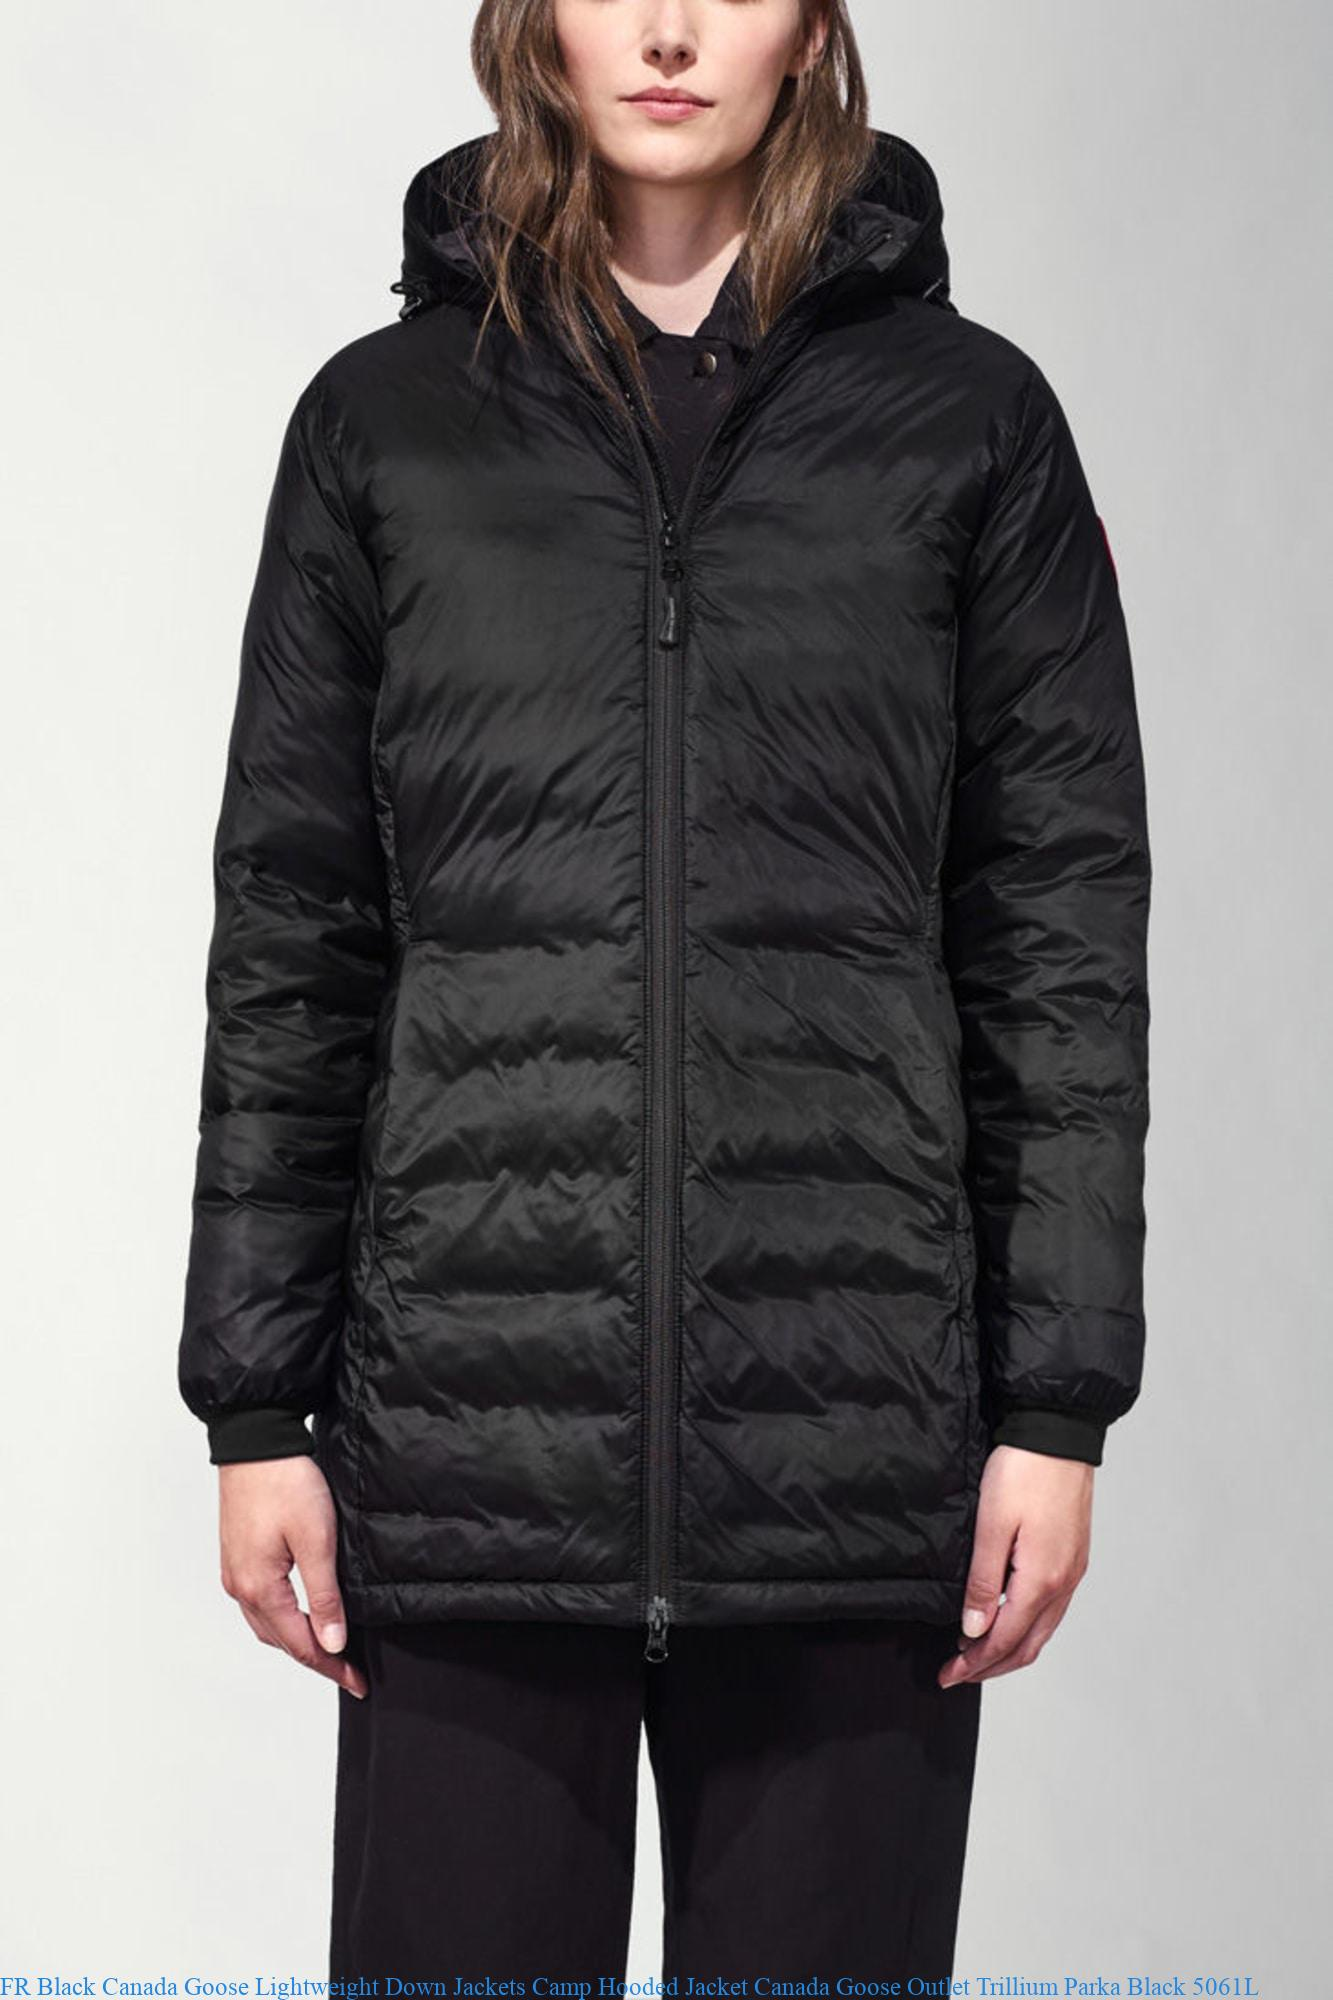 Discount Canada Goose hooded zip up parka Canada Goose